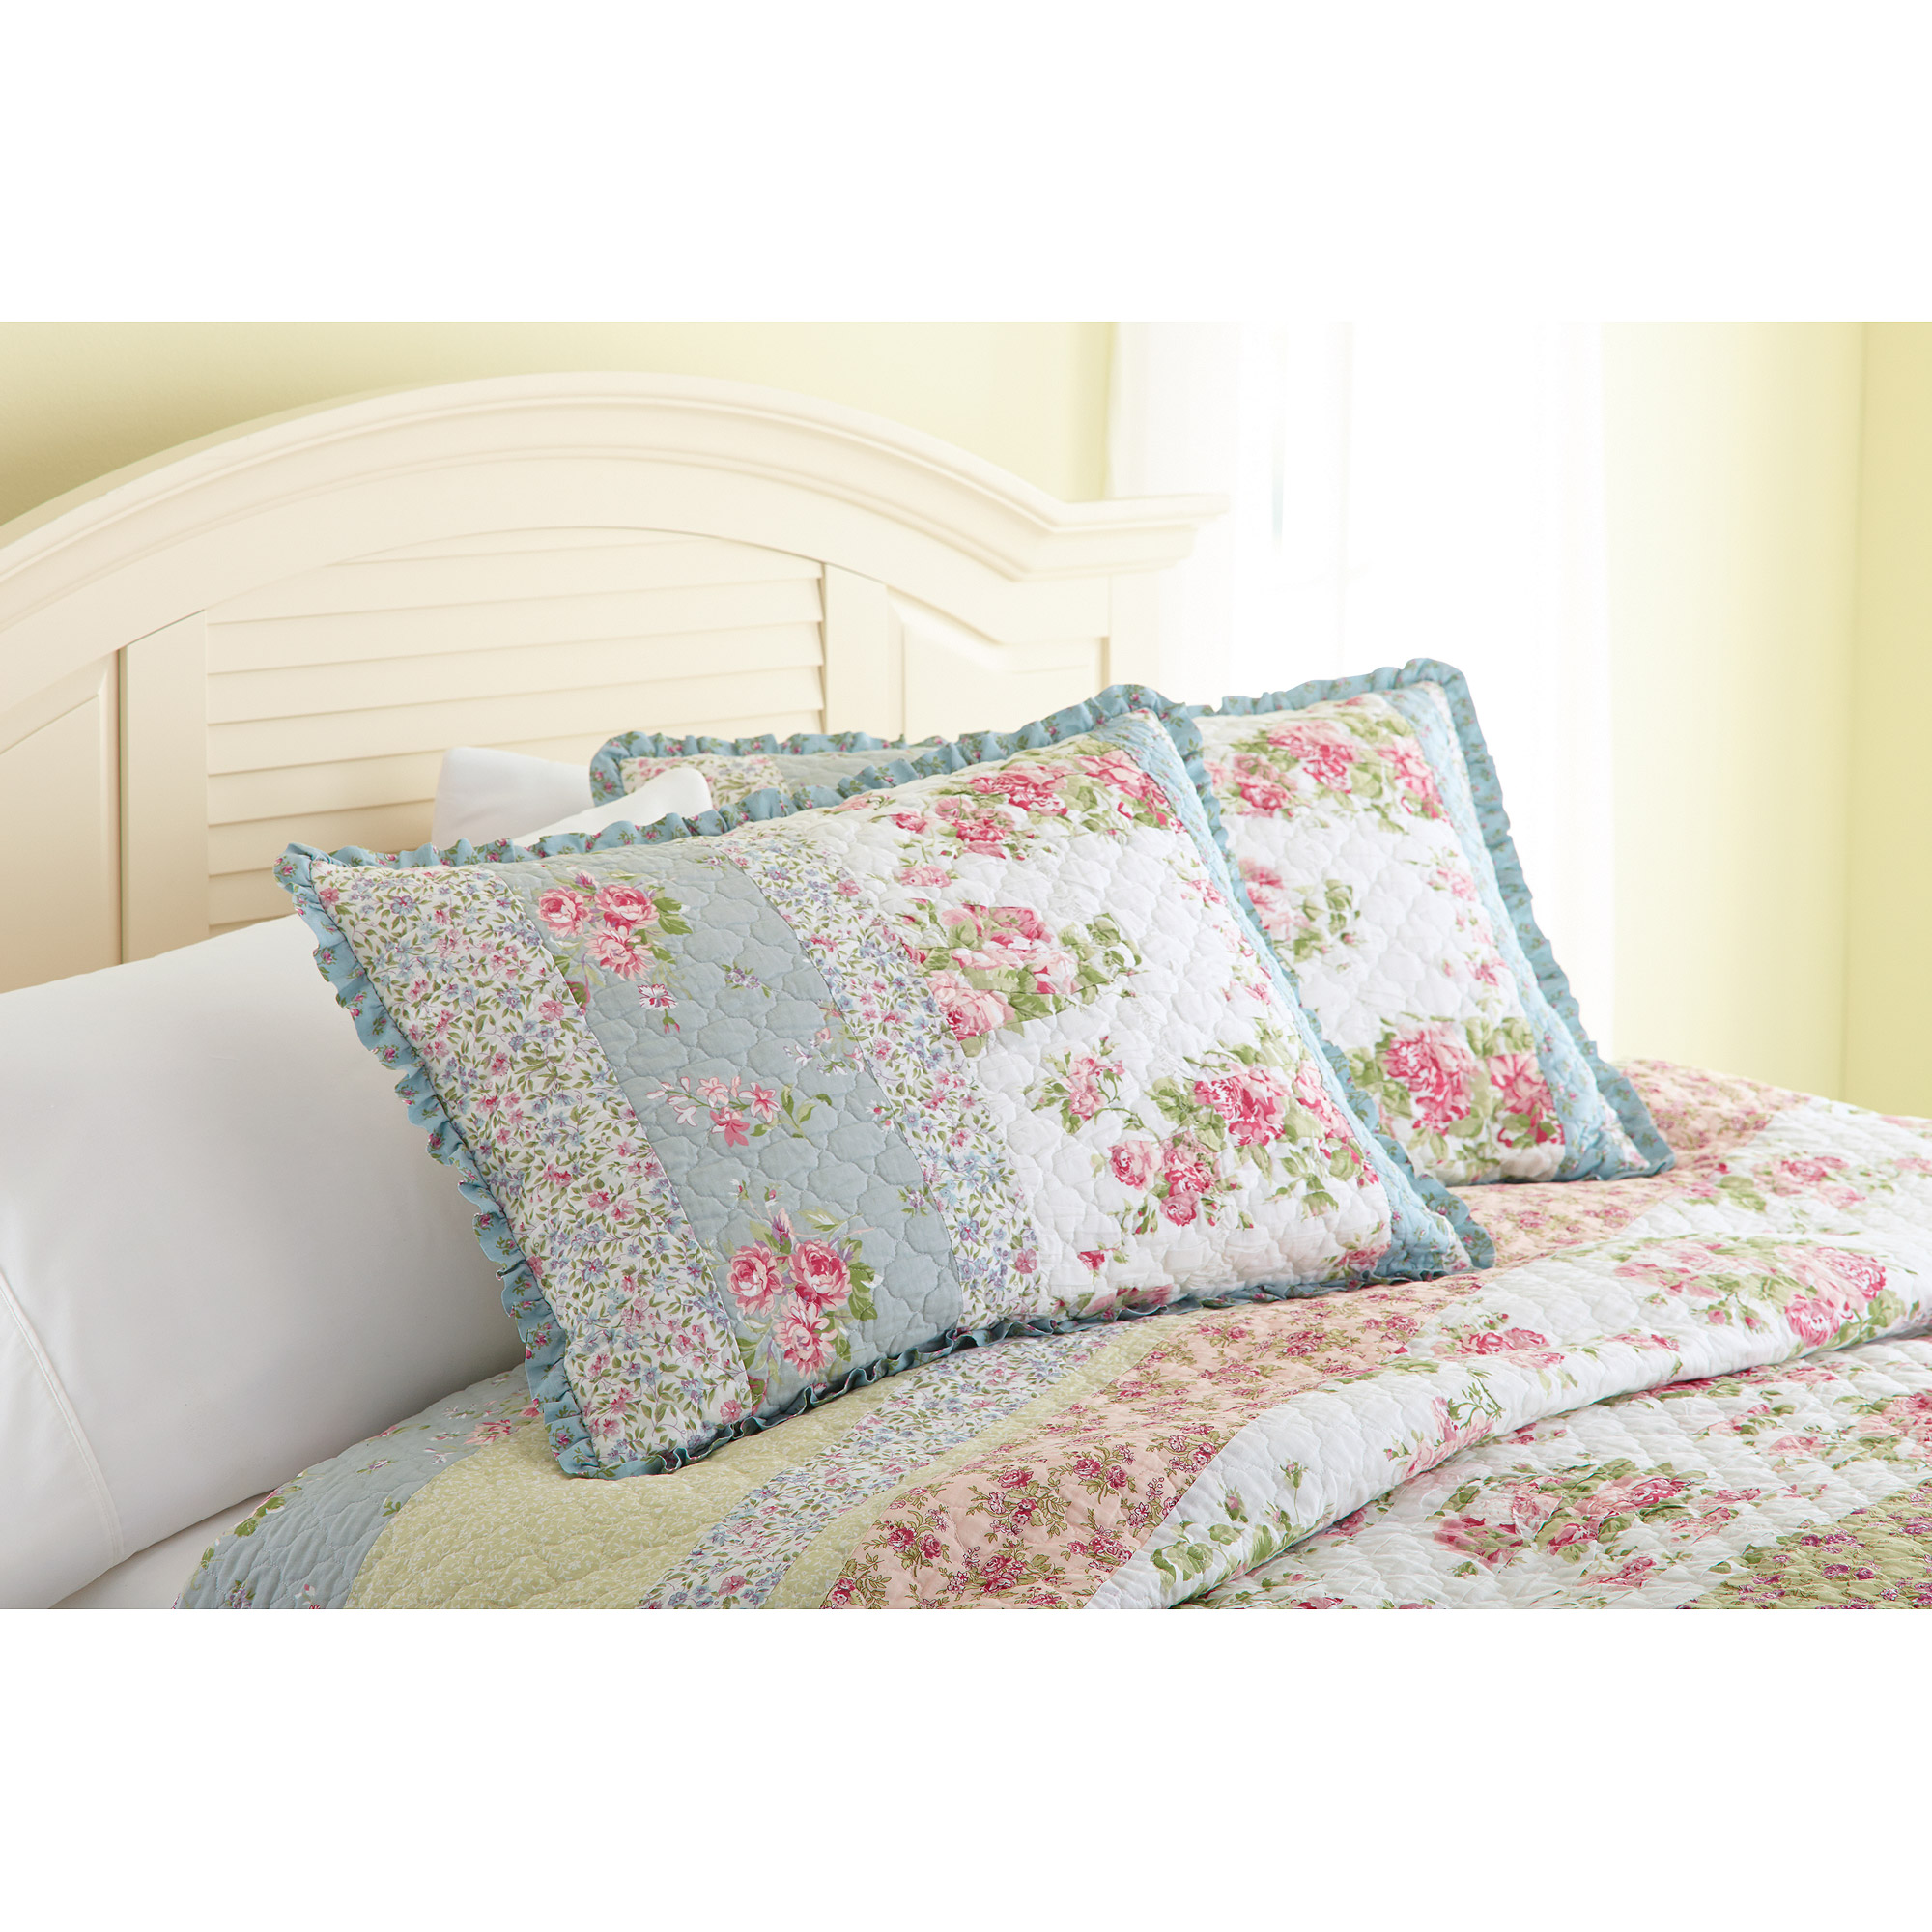 Product : better homes quilts - Adamdwight.com